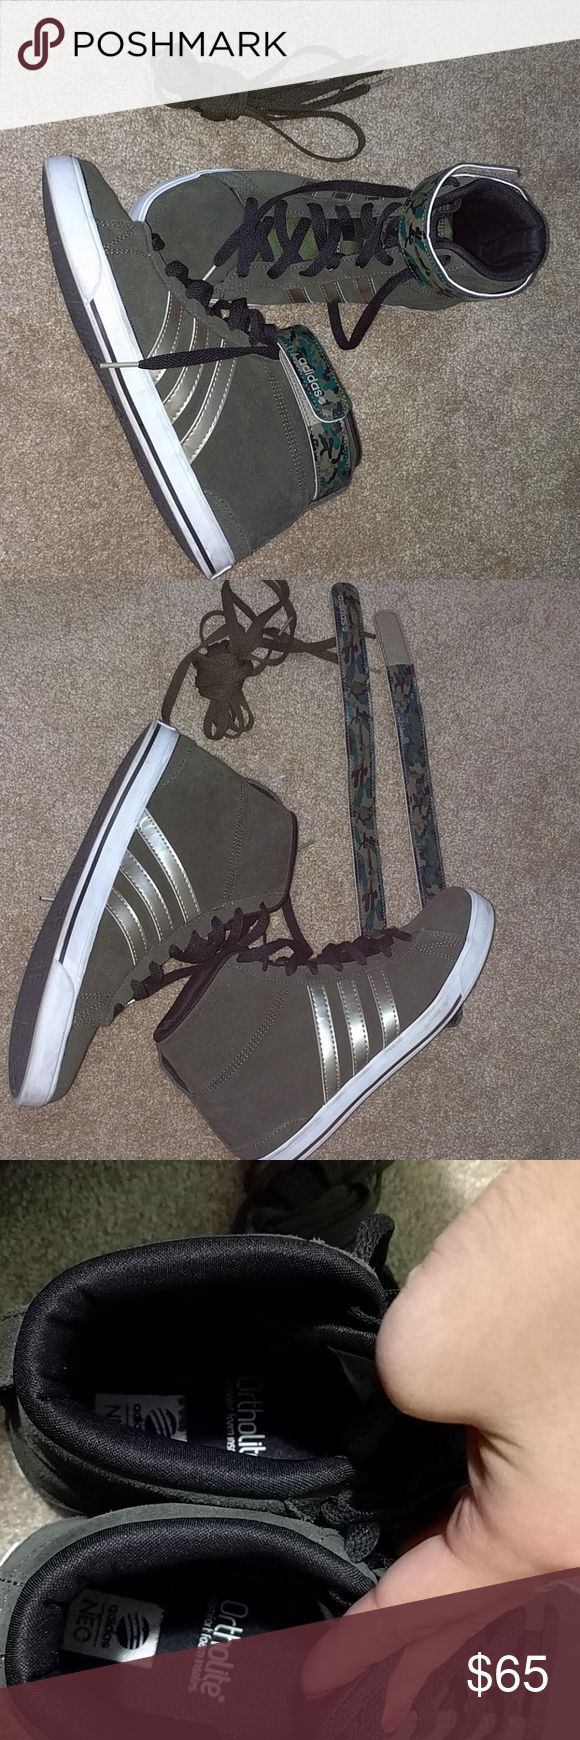 Adidas high top neo ortholite olive green sneakers Gorgeous, worn once and they still look brand new!!! Comes with removable camouflage bands and alternative olive green laces Adidas Shoes Sneakers